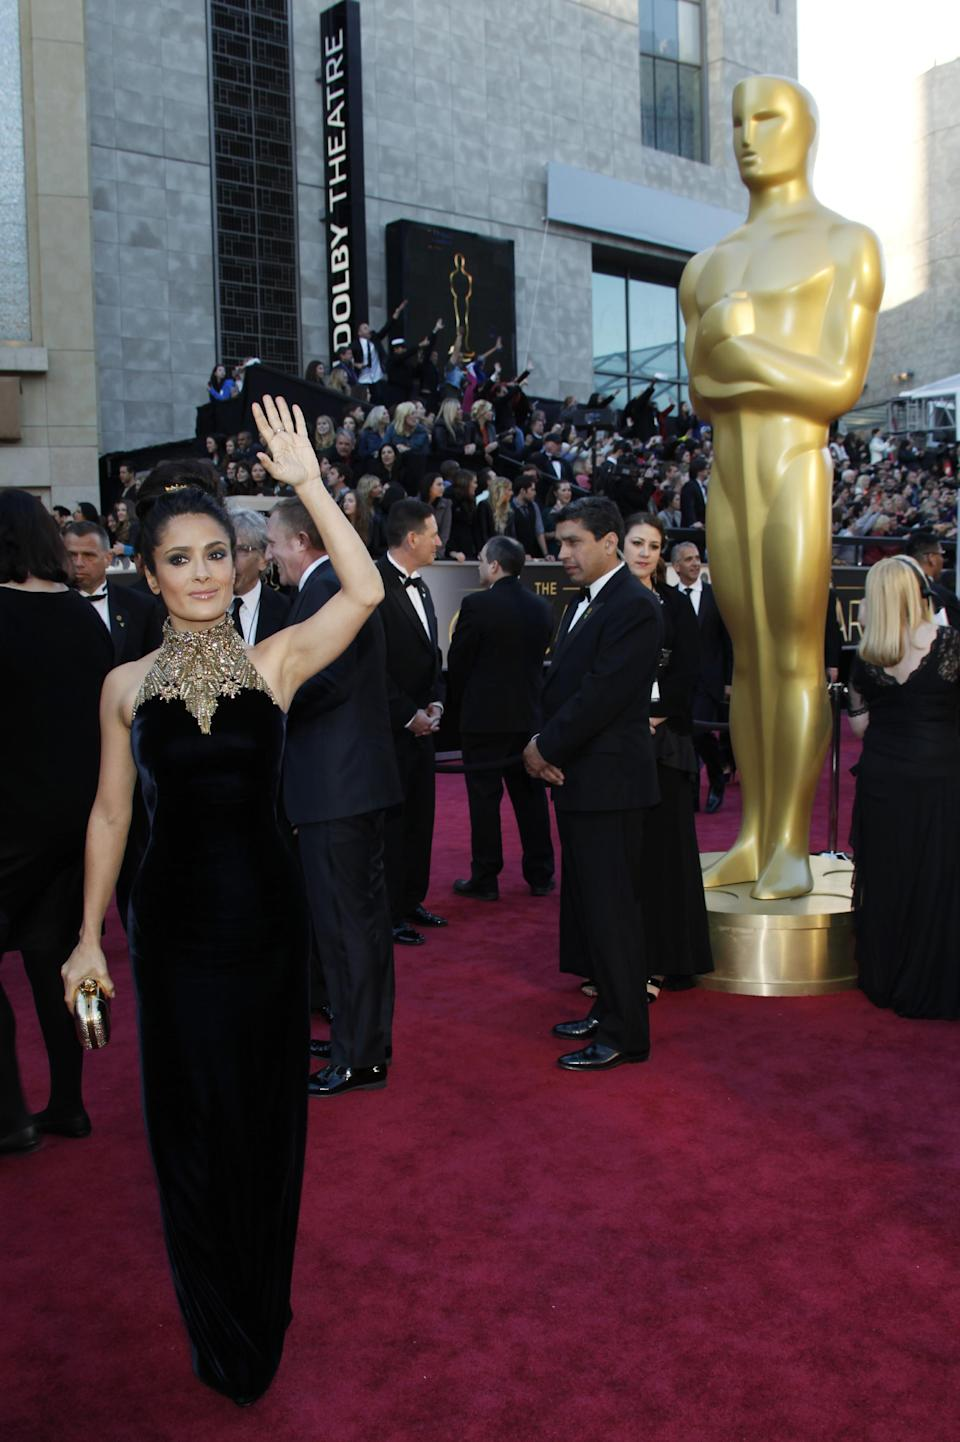 Actress Salma Hayek arrives at the Oscars at the Dolby Theatre on Sunday Feb. 24, 2013, in Los Angeles. (Photo by Carlo Allegri/Invision/AP)